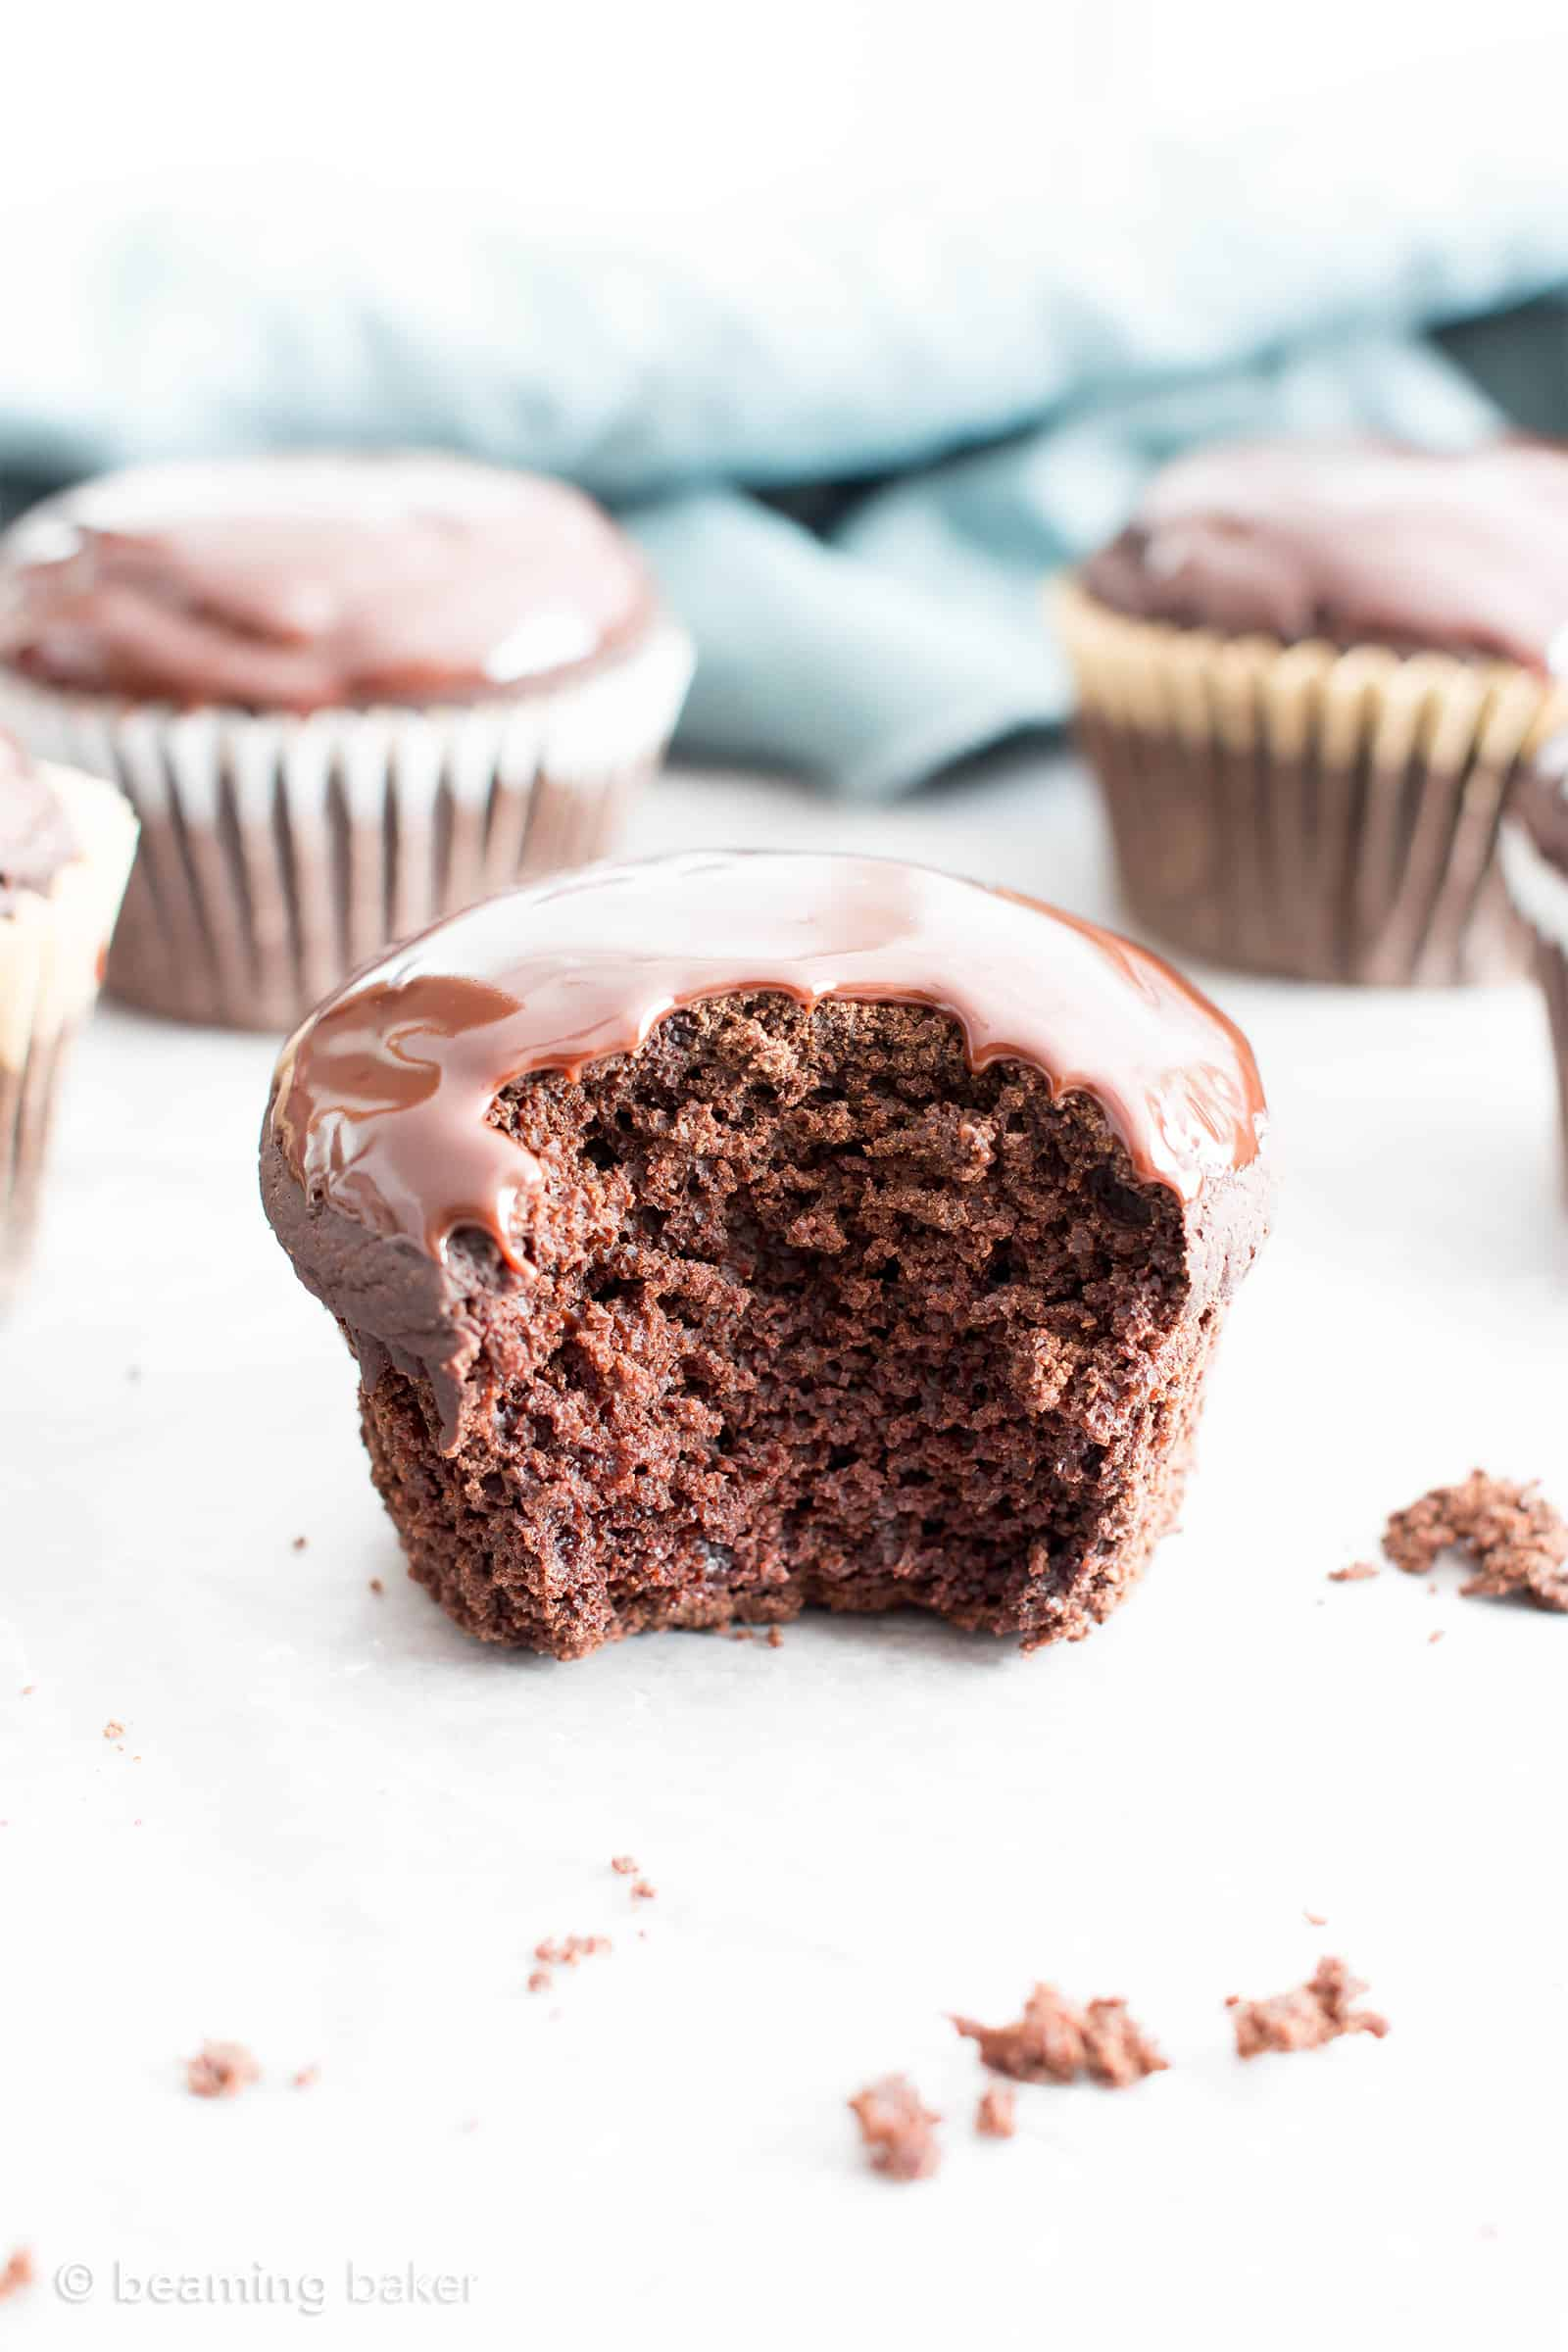 Chocolate Ganache Cupcakes (V, GF): an easy recipe for perfectly moist chocolate cupcakes covered in a thick layer of rich chocolate ganache! #Vegan #GlutenFree #DairyFree #Chocolate #Dessert   Recipe on BeamingBaker.com